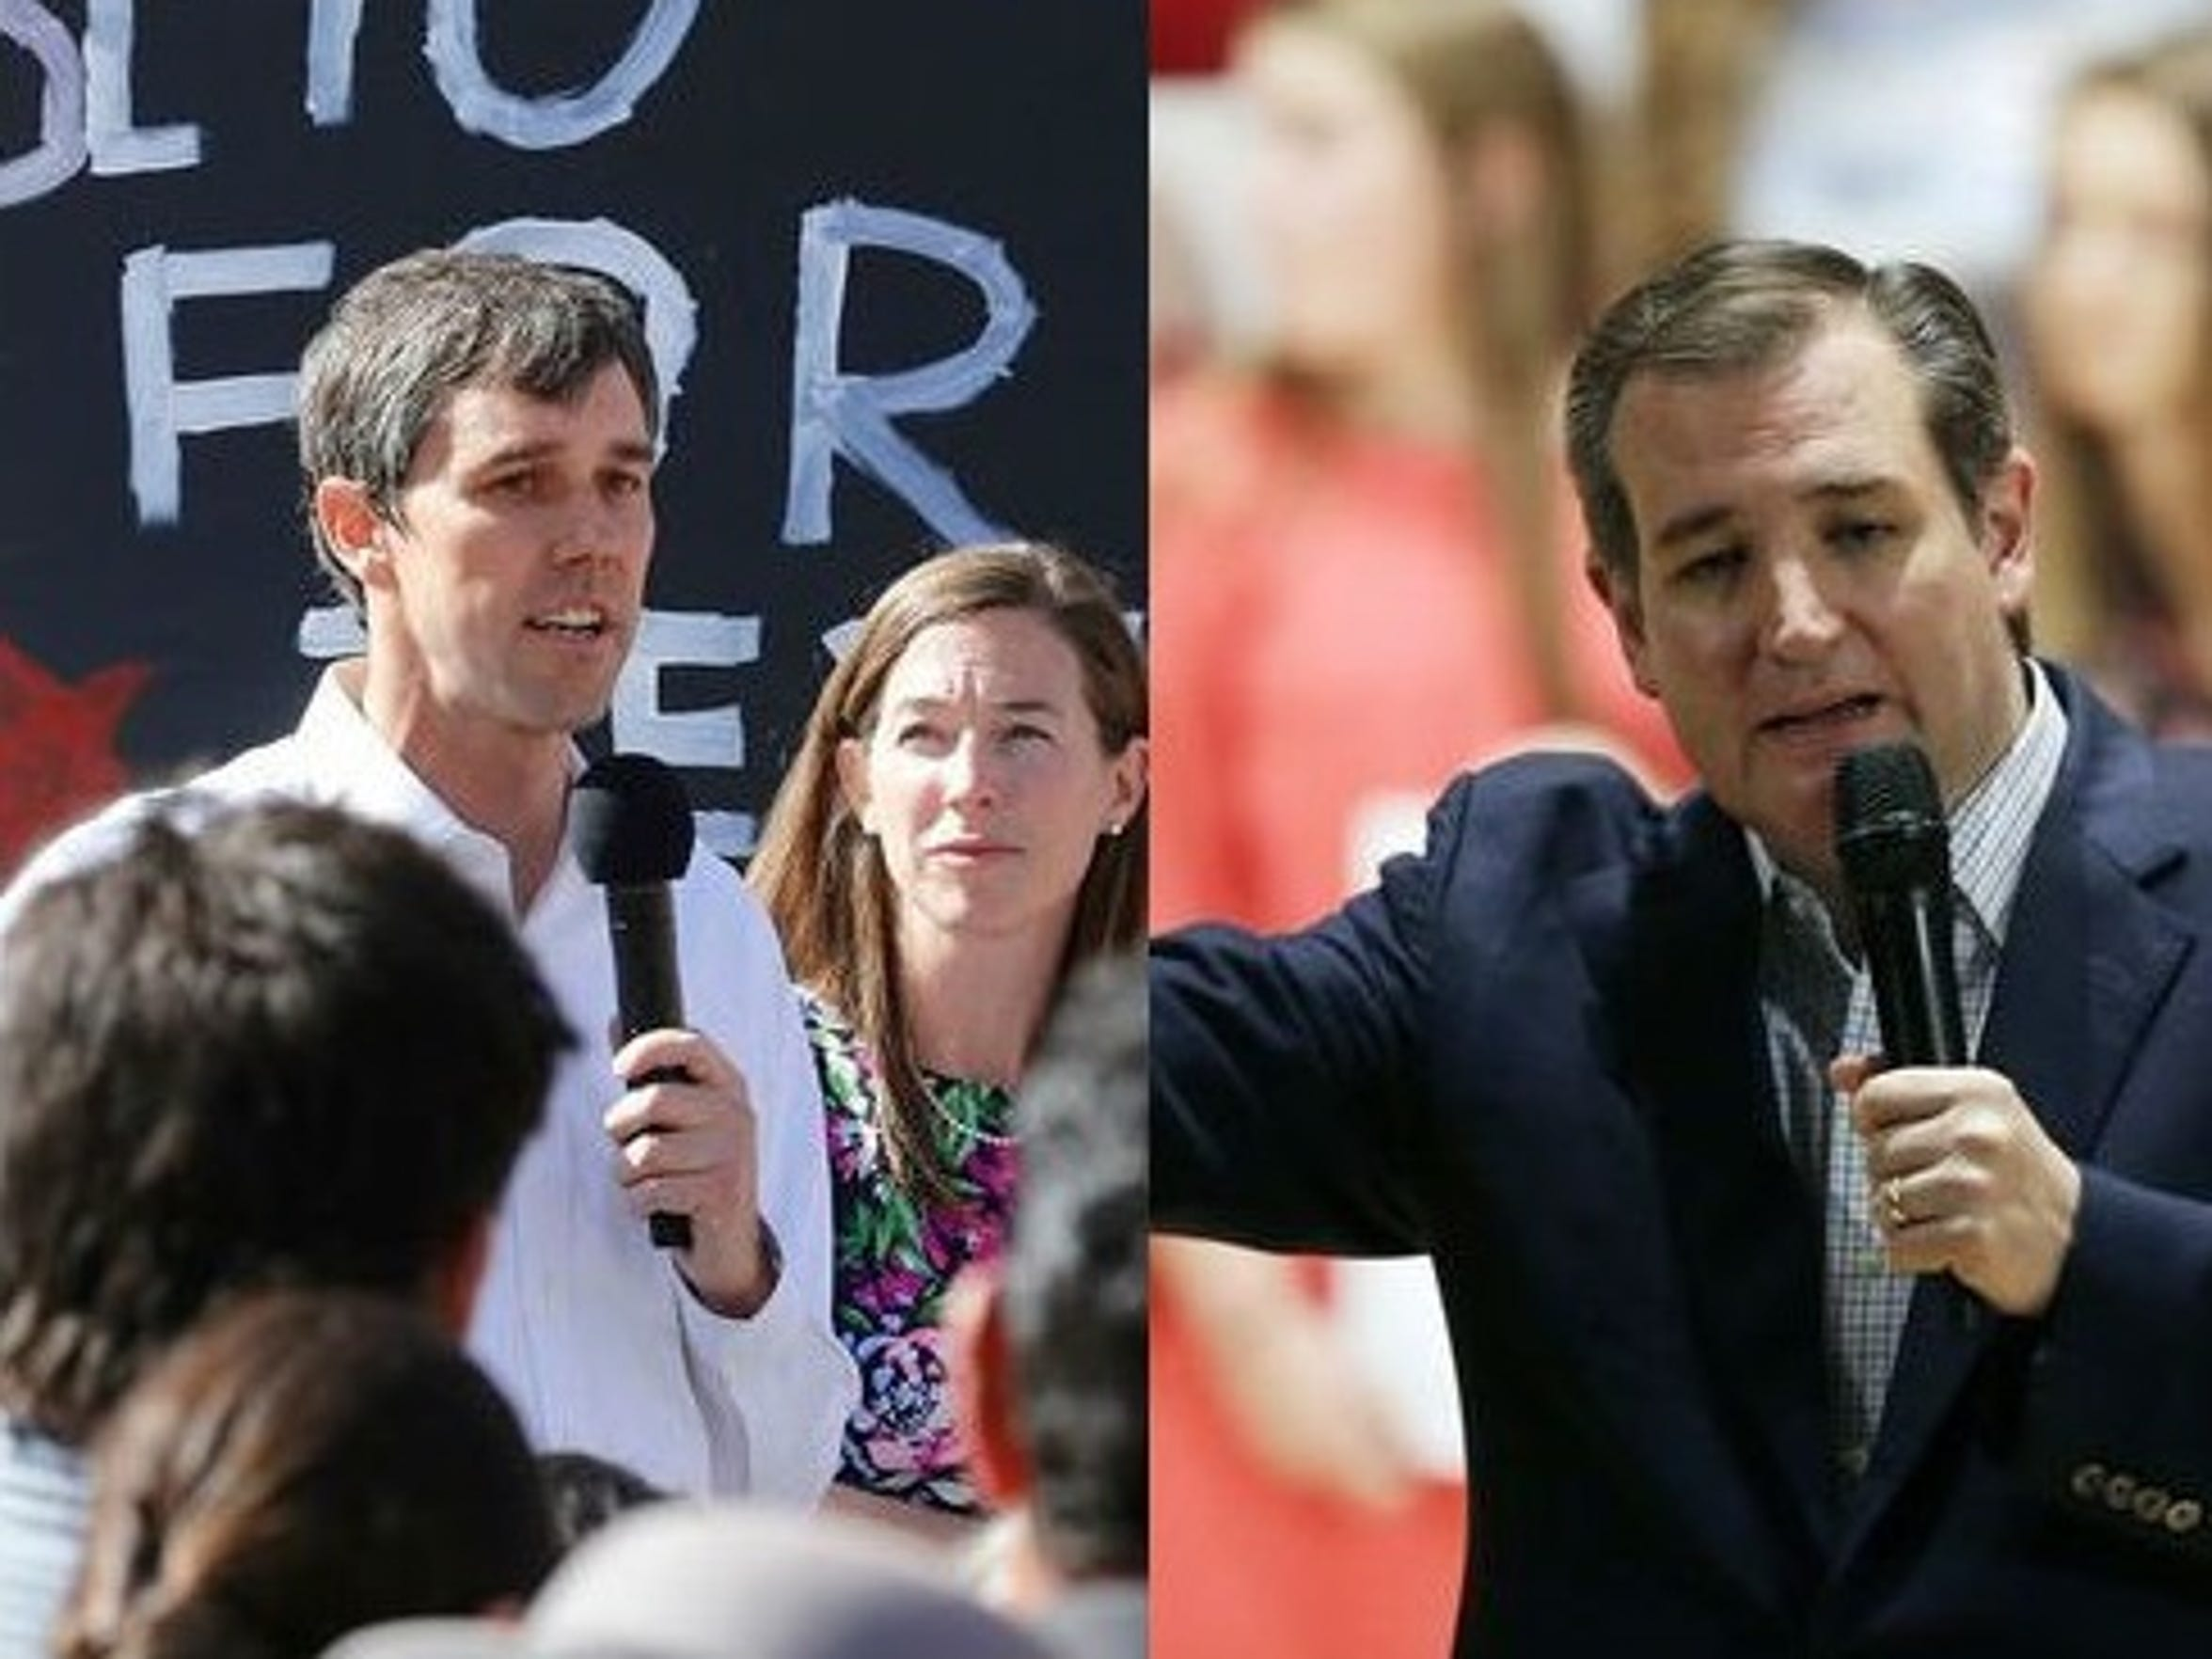 U.S. Rep. Beto O'Rourke and U.S. Sen. Ted Cruz